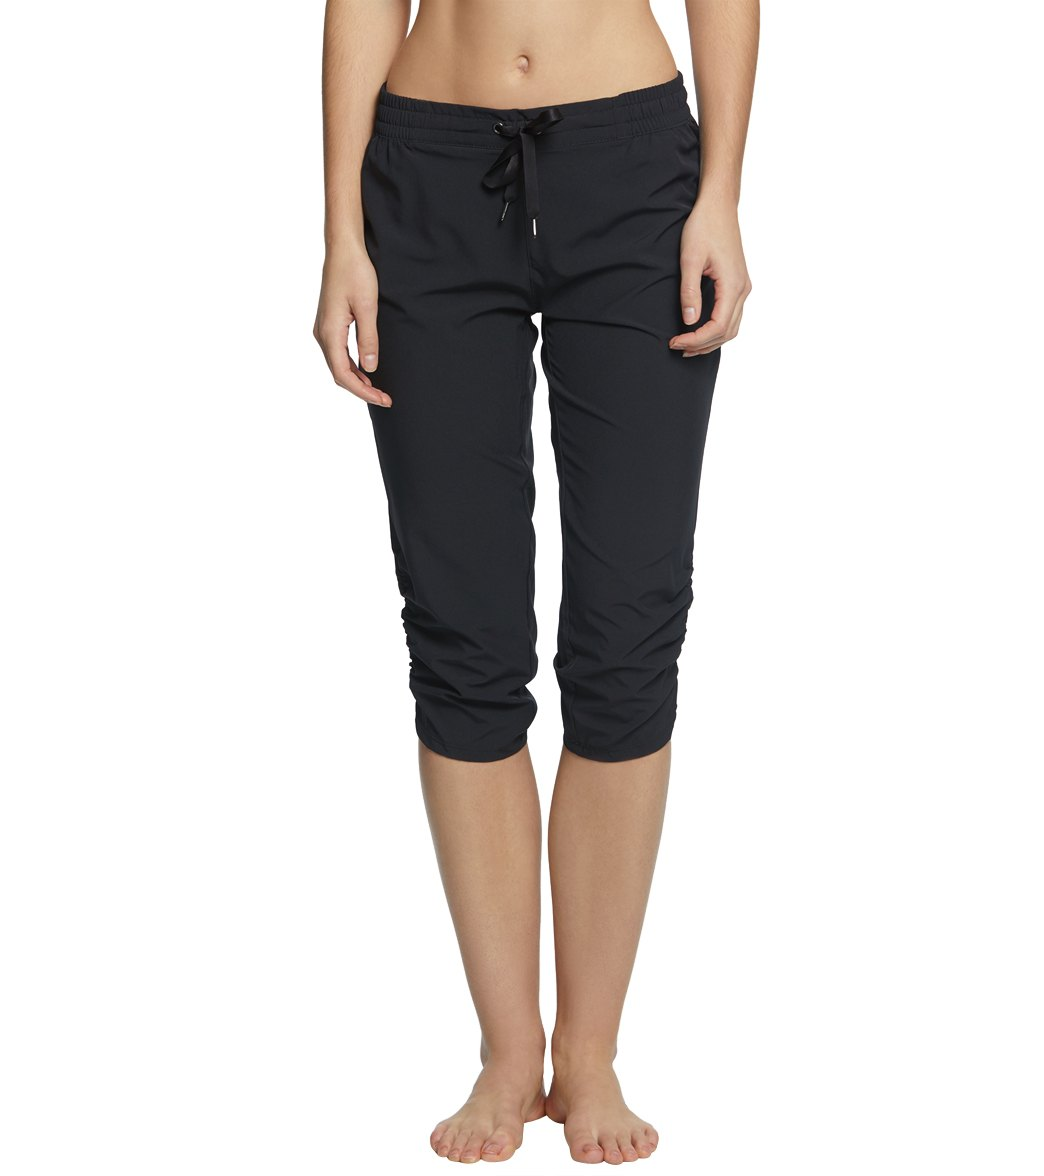 51091acee5b0 Marika Stretch Woven Yoga Capris at YogaOutlet.com - Free Shipping